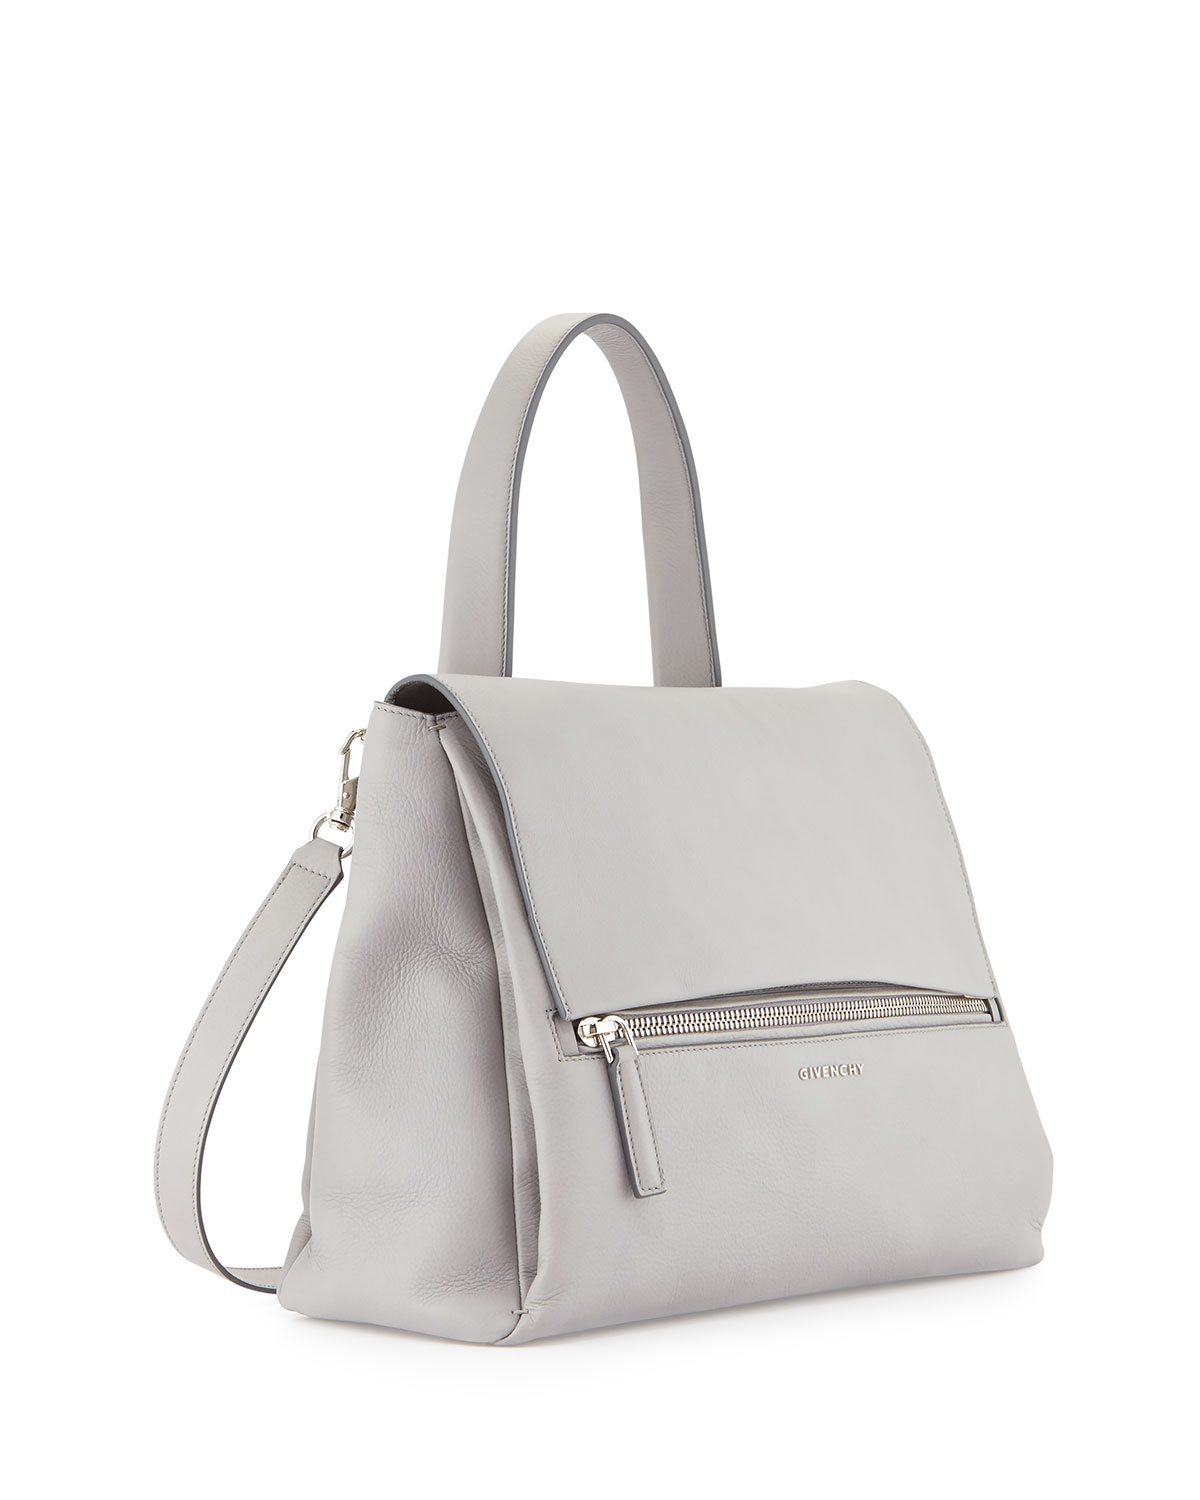 0eefb5f26794 Lyst - Givenchy Pandora Pure Medium Calf Leather Satchel Bag in Gray